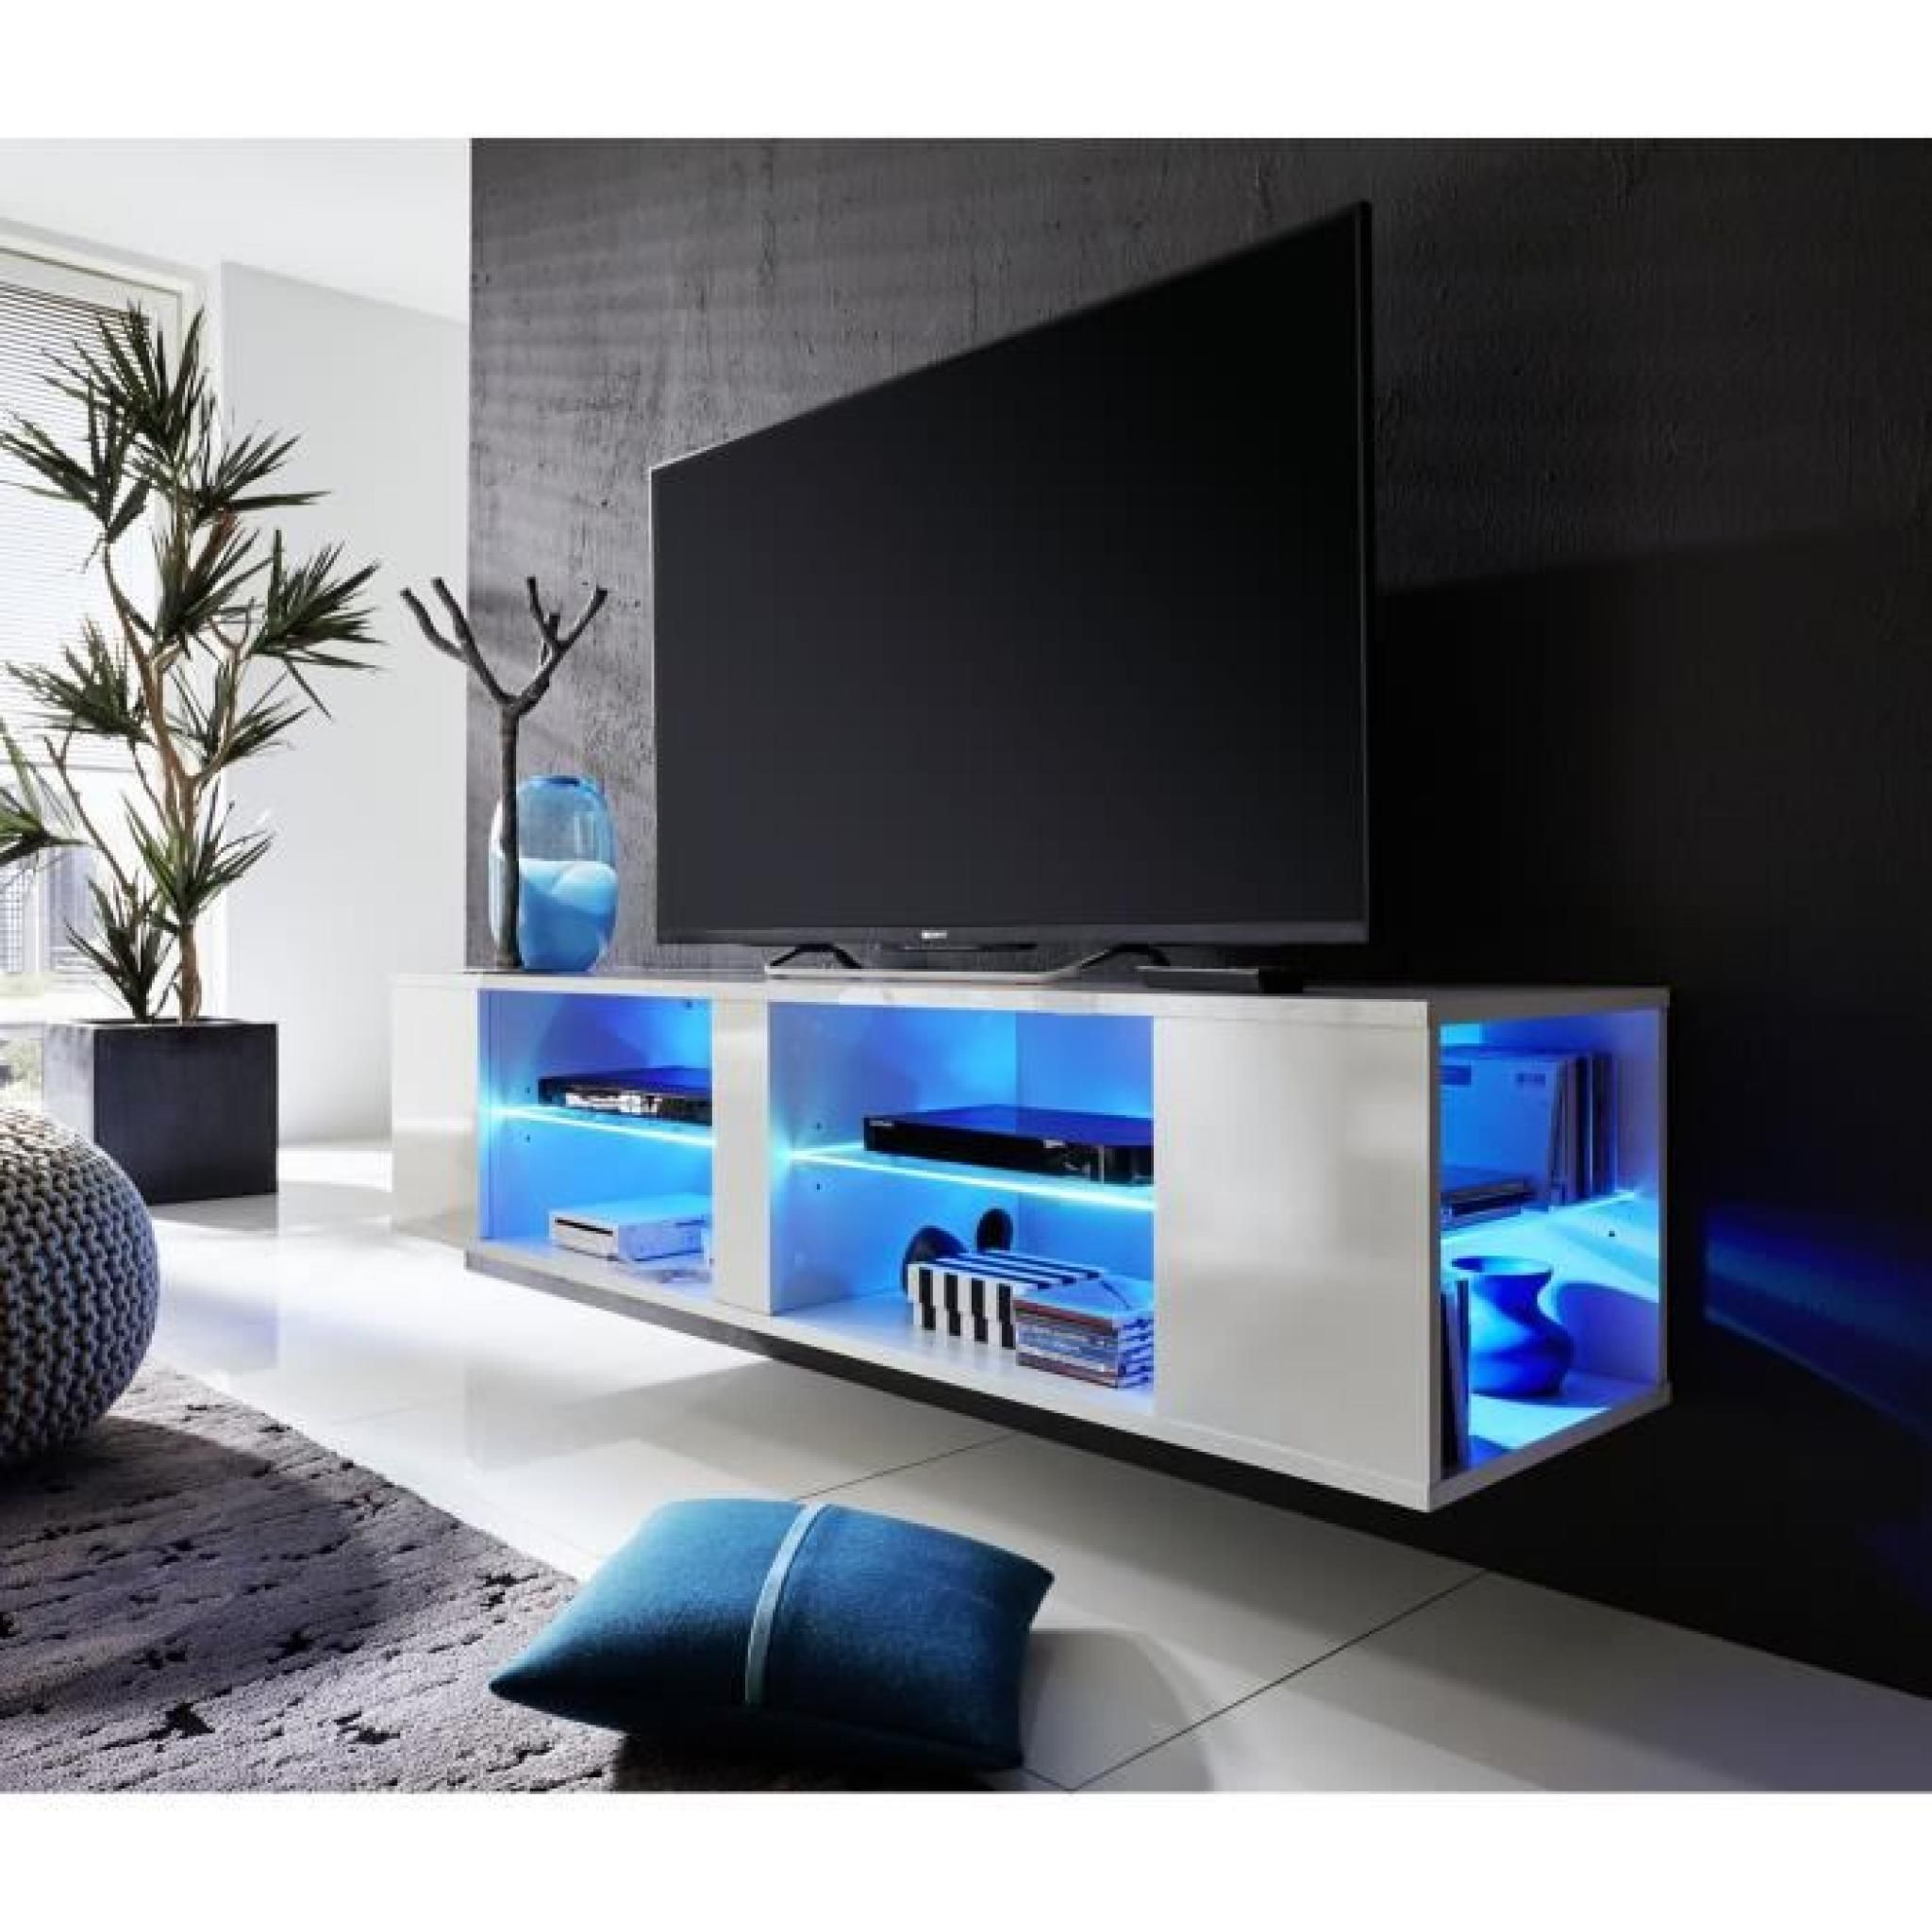 Meuble Tv Suspendu Led - Meuble Tv Suspendu Led 1 Id Es De D Coration Int Rieure French [mjhdah]https://www.novomeuble.com/3469-thickbox_default/meuble-tv-suspendu.jpg